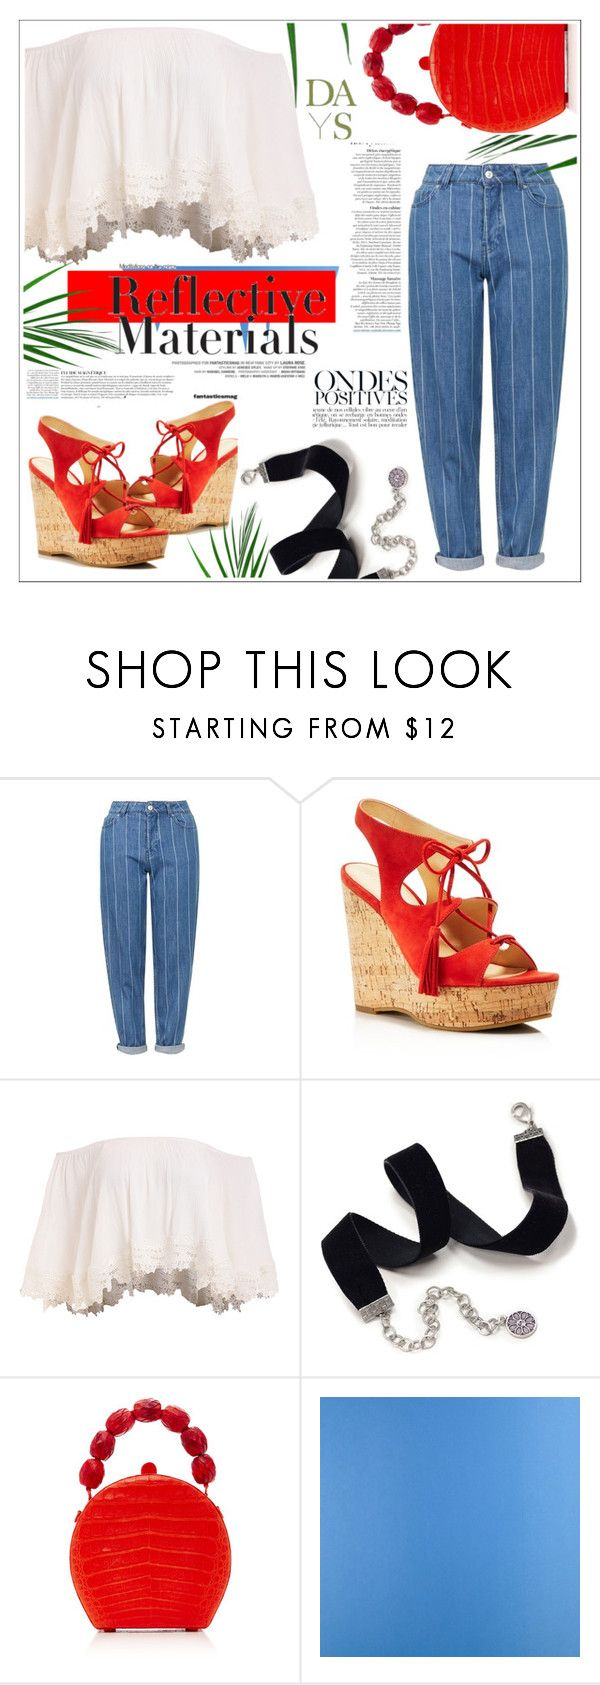 The Color Theme By Olx Kz Liked On Polyvore Featuring Topshop